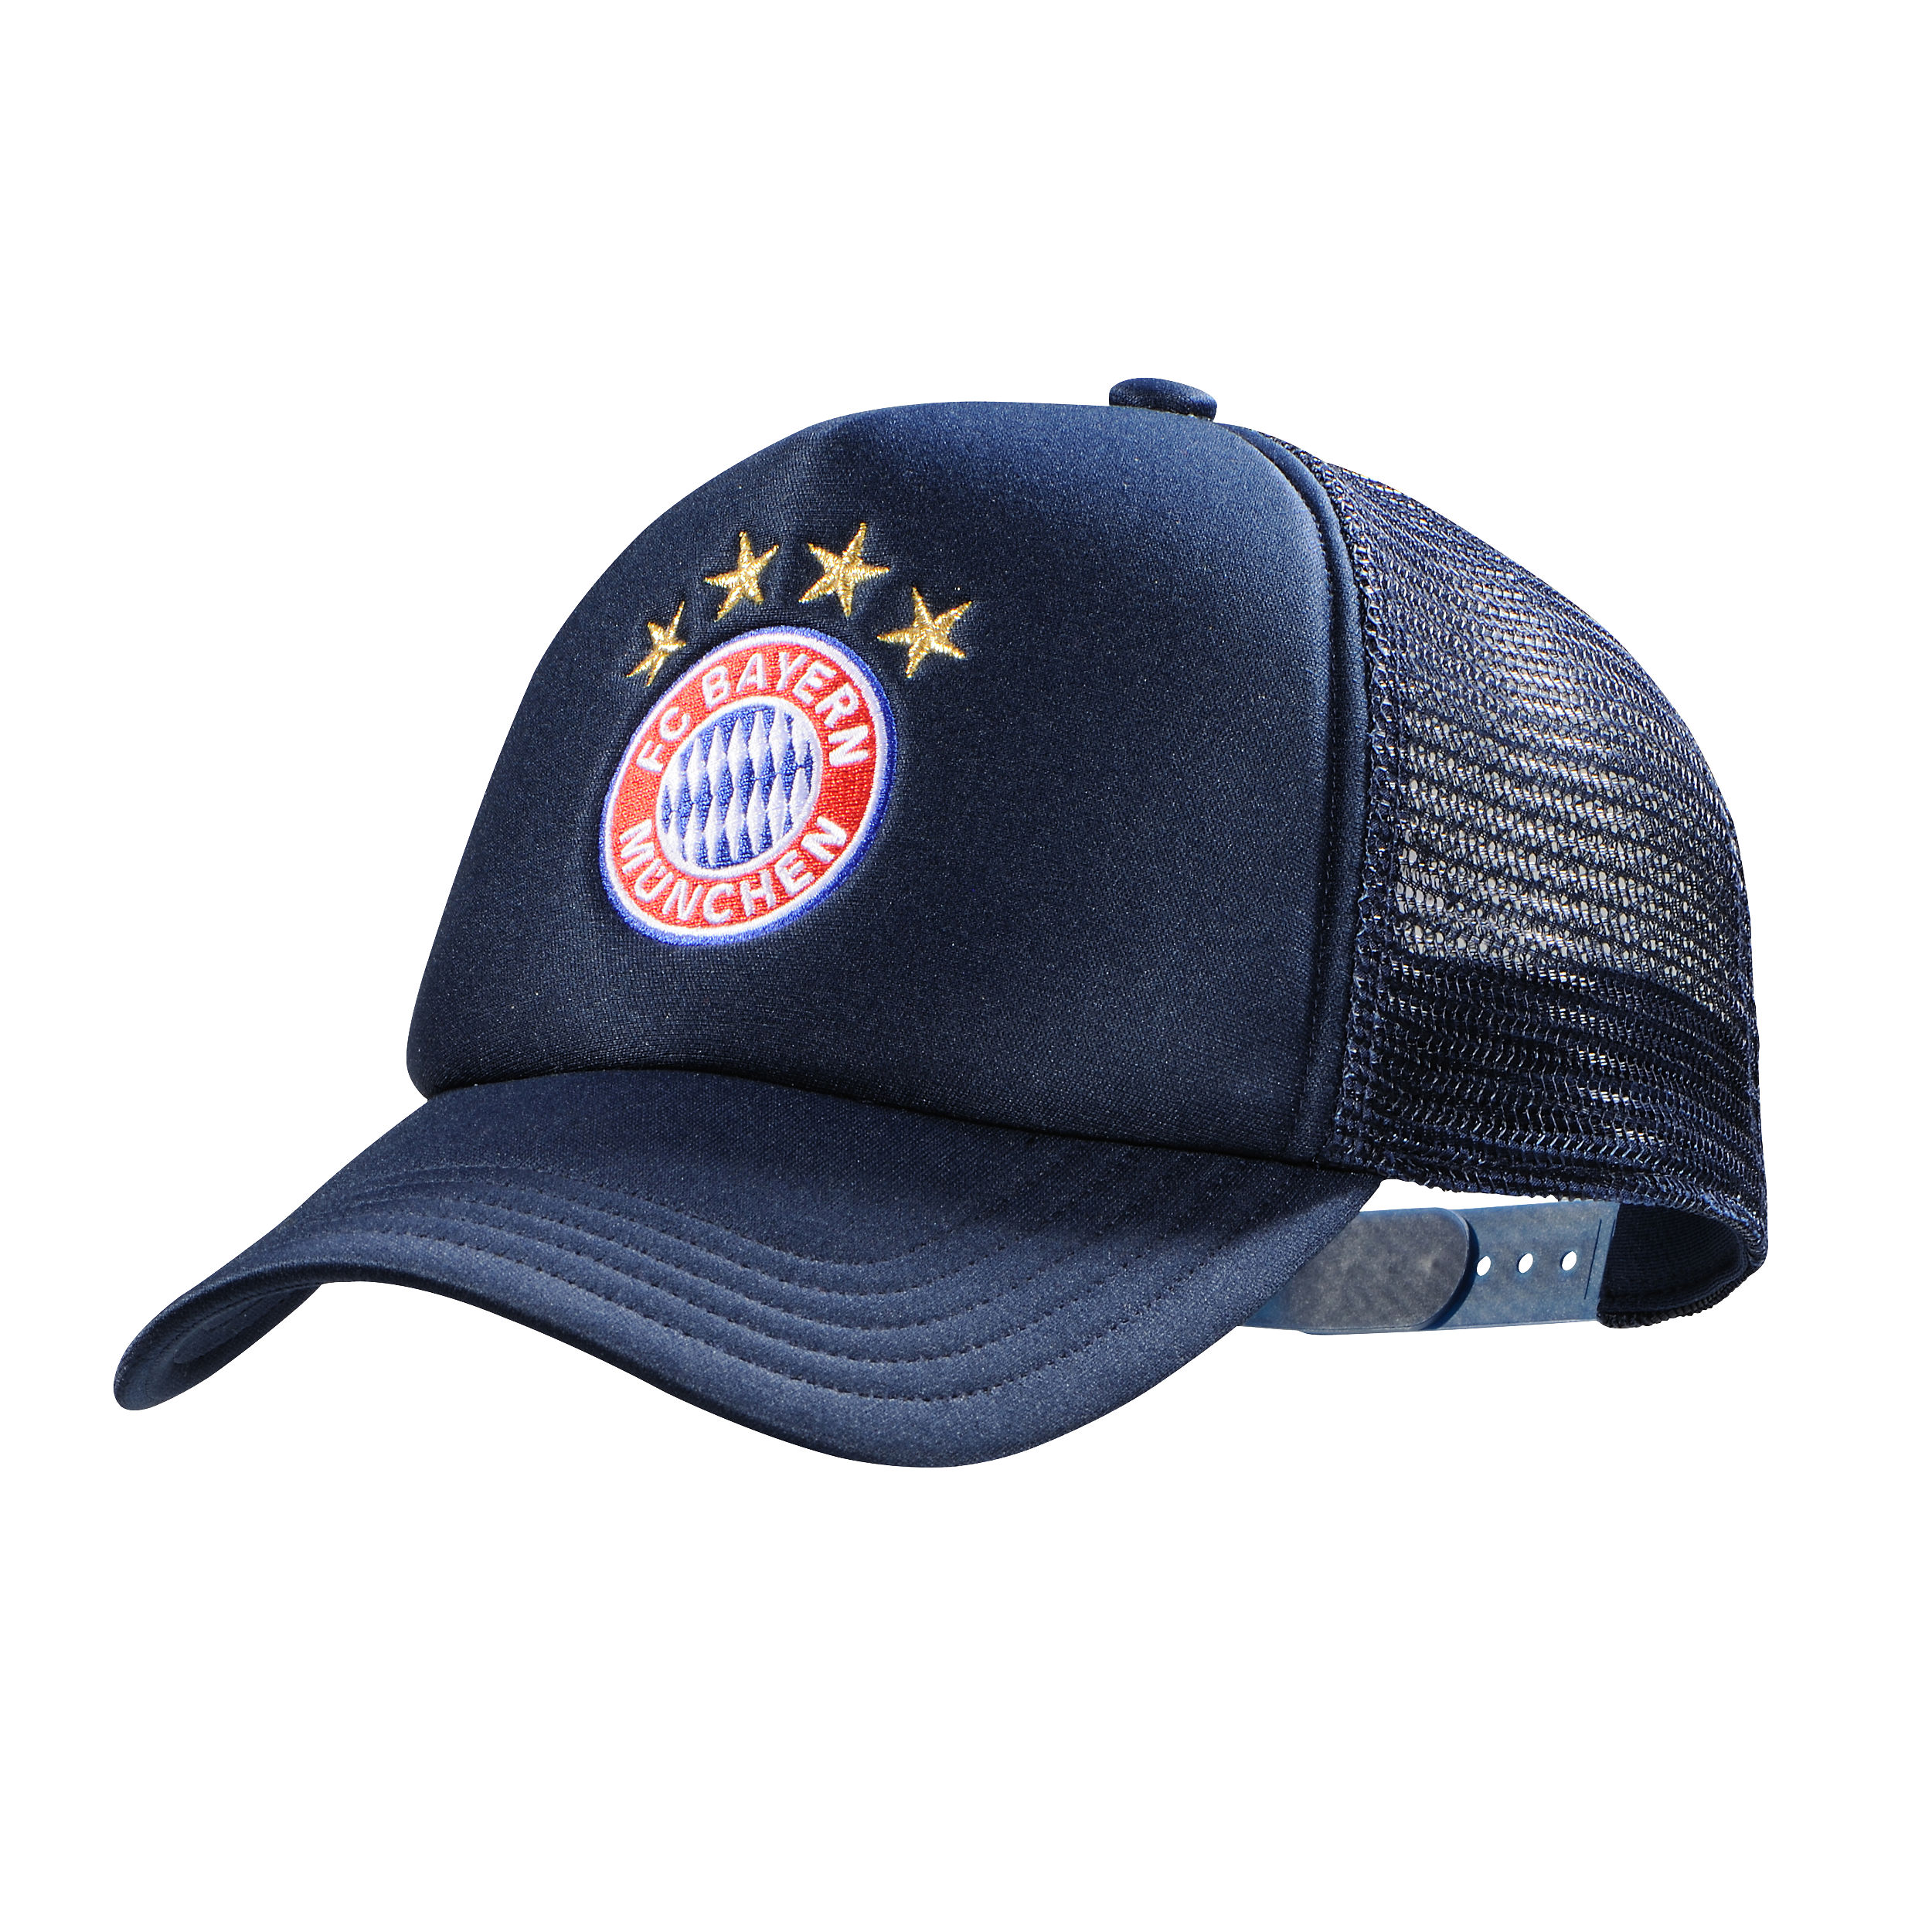 caps official fc bayern online store